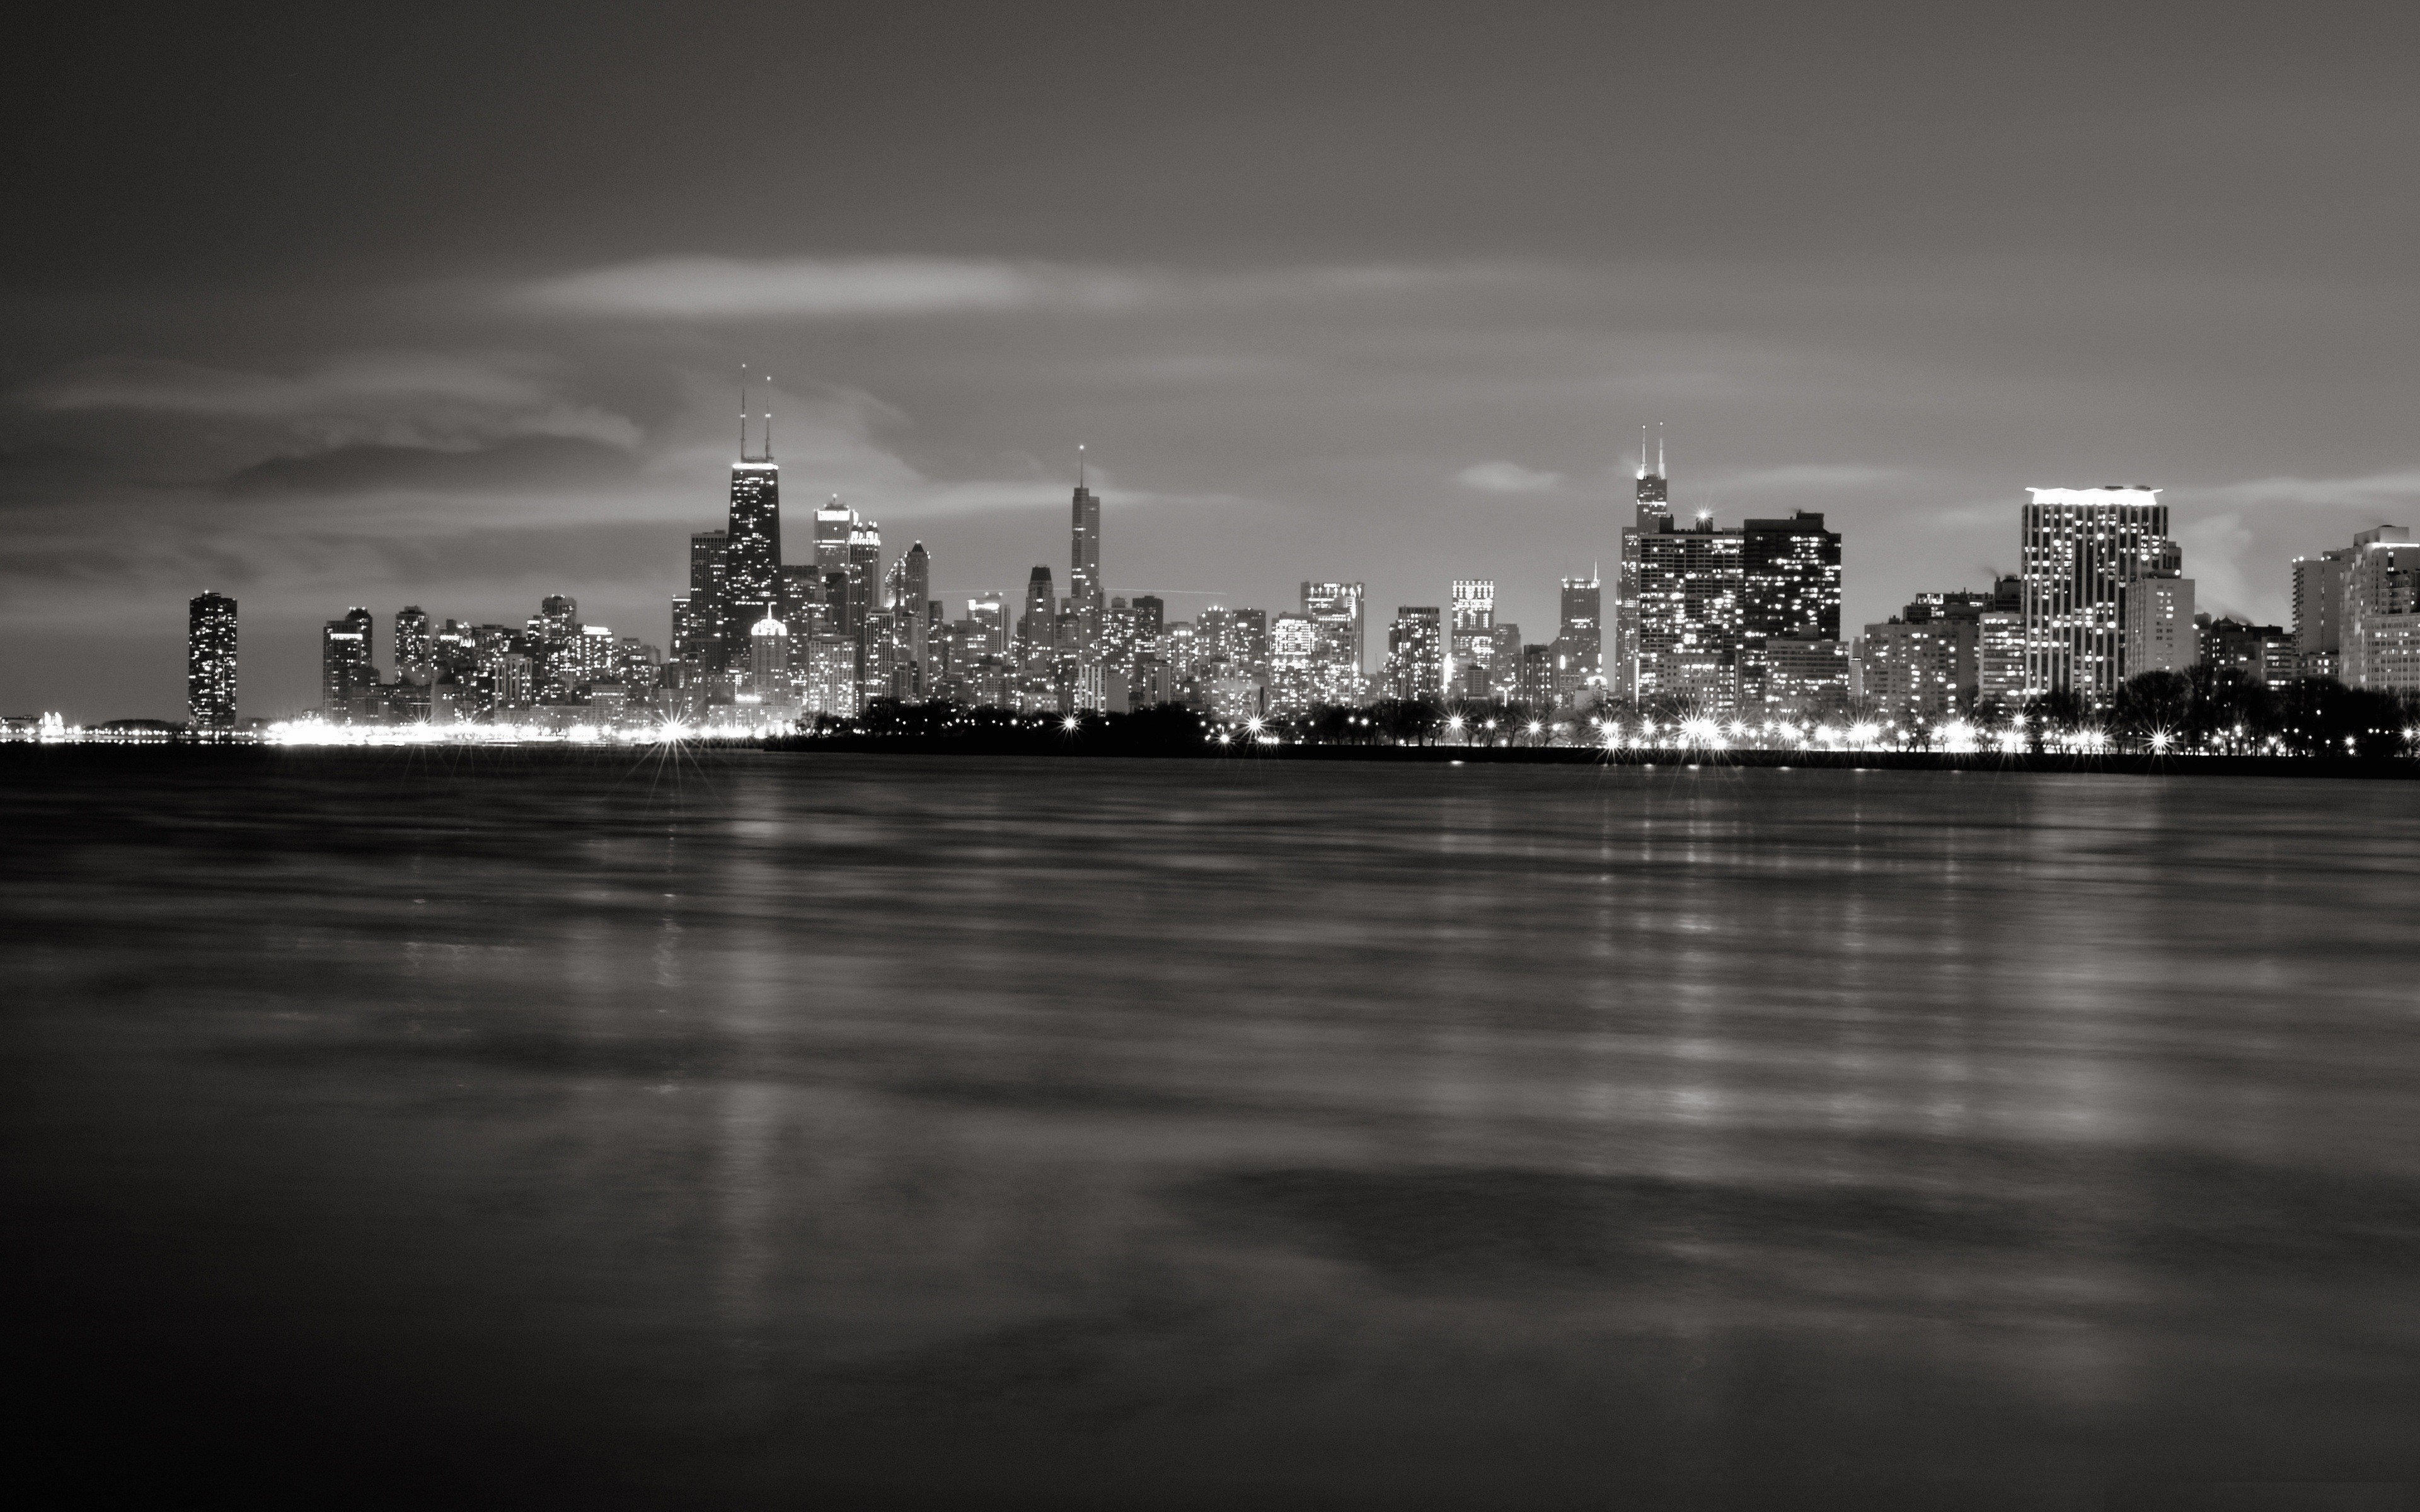 Great Wallpaper Macbook Chicago - chicago-cityscapes-grayscale-skylines-3840x2400-wallpaper  Trends_419387.jpg